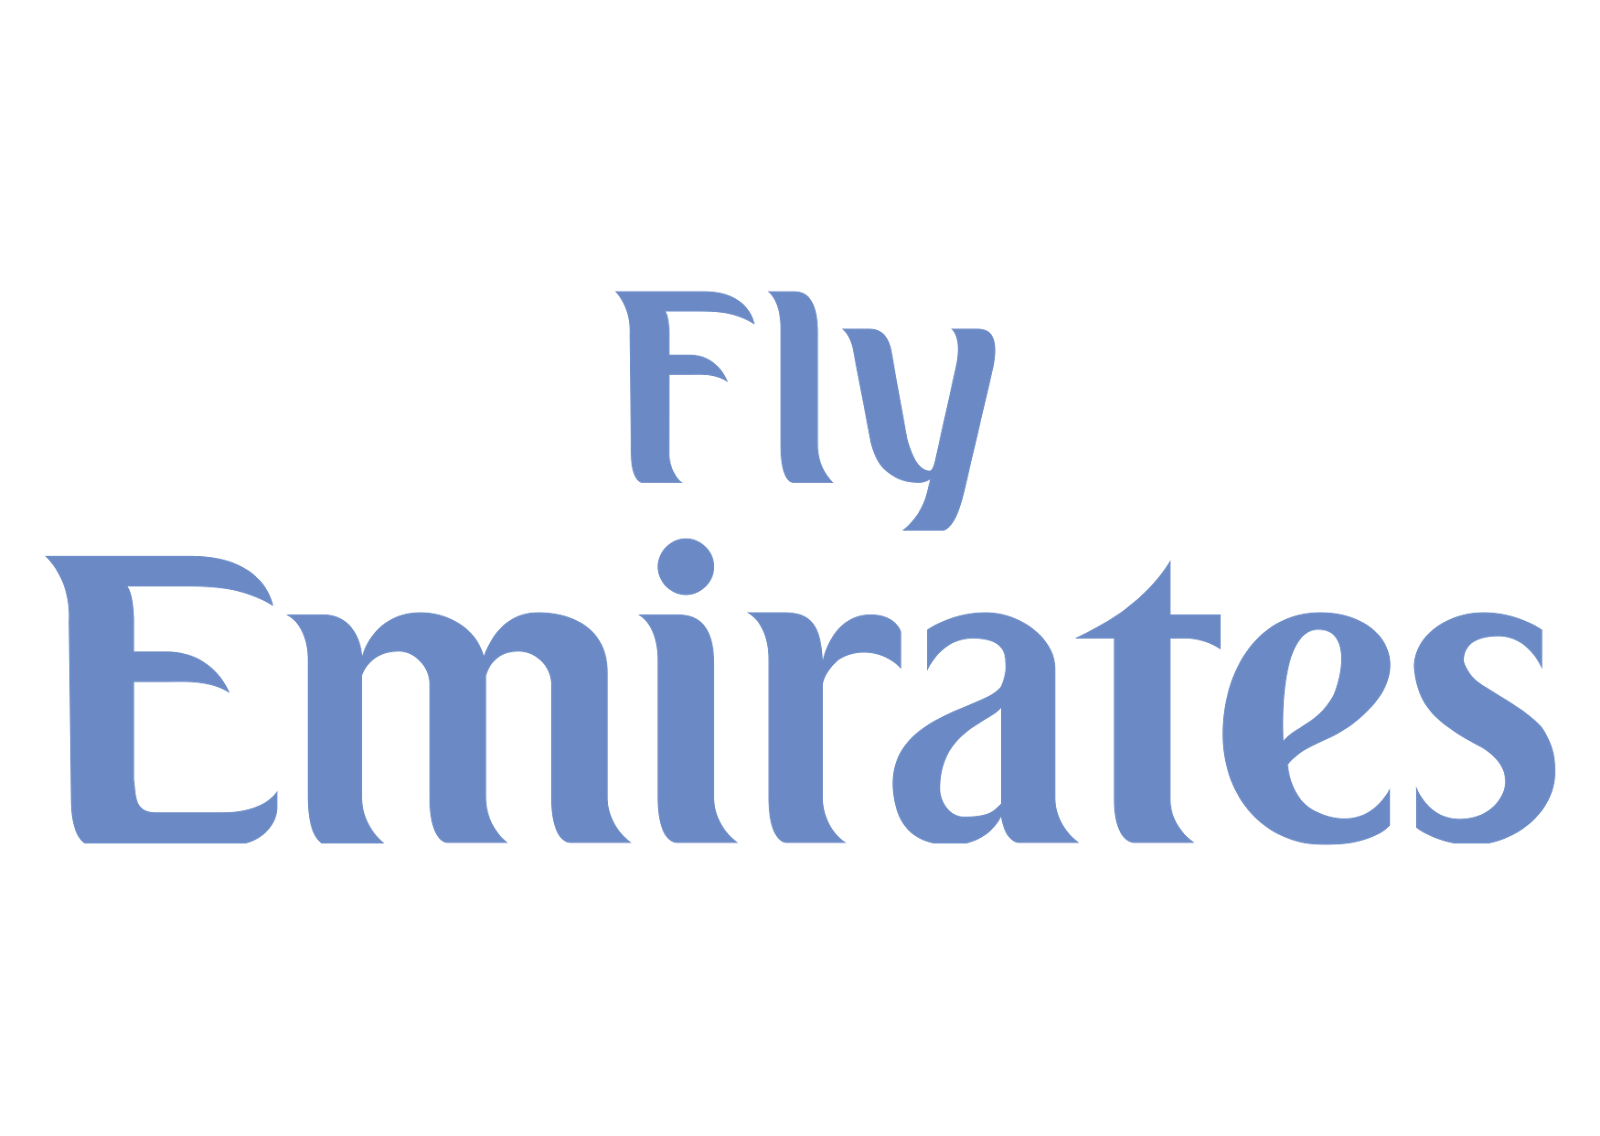 Fly Emirates Logo Wallpaper